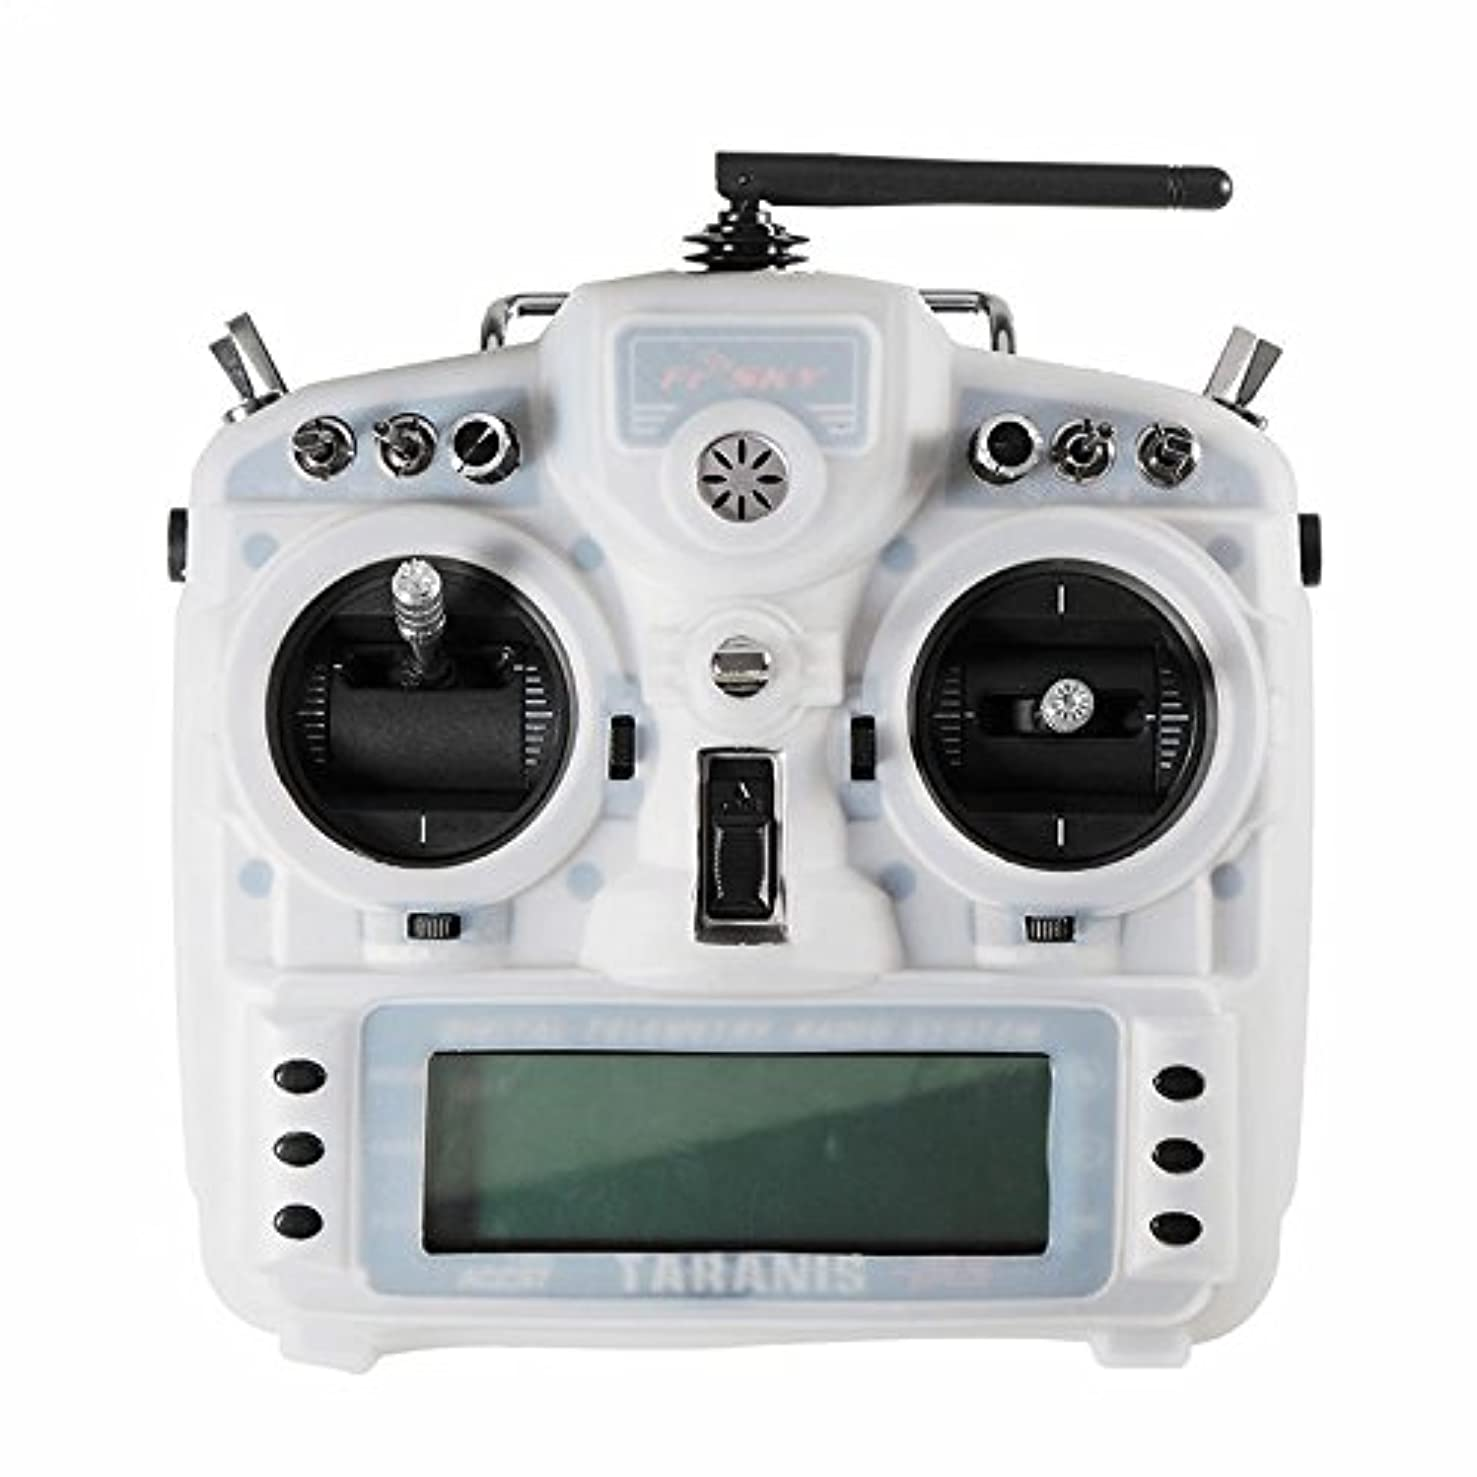 Transmitter Silicone Case Cover Shell Spare Part for X9D Plus SE - RC Toys & Hobbies Radios & Receiver - (White) - 1 X Transmitter Silicone Case Cover